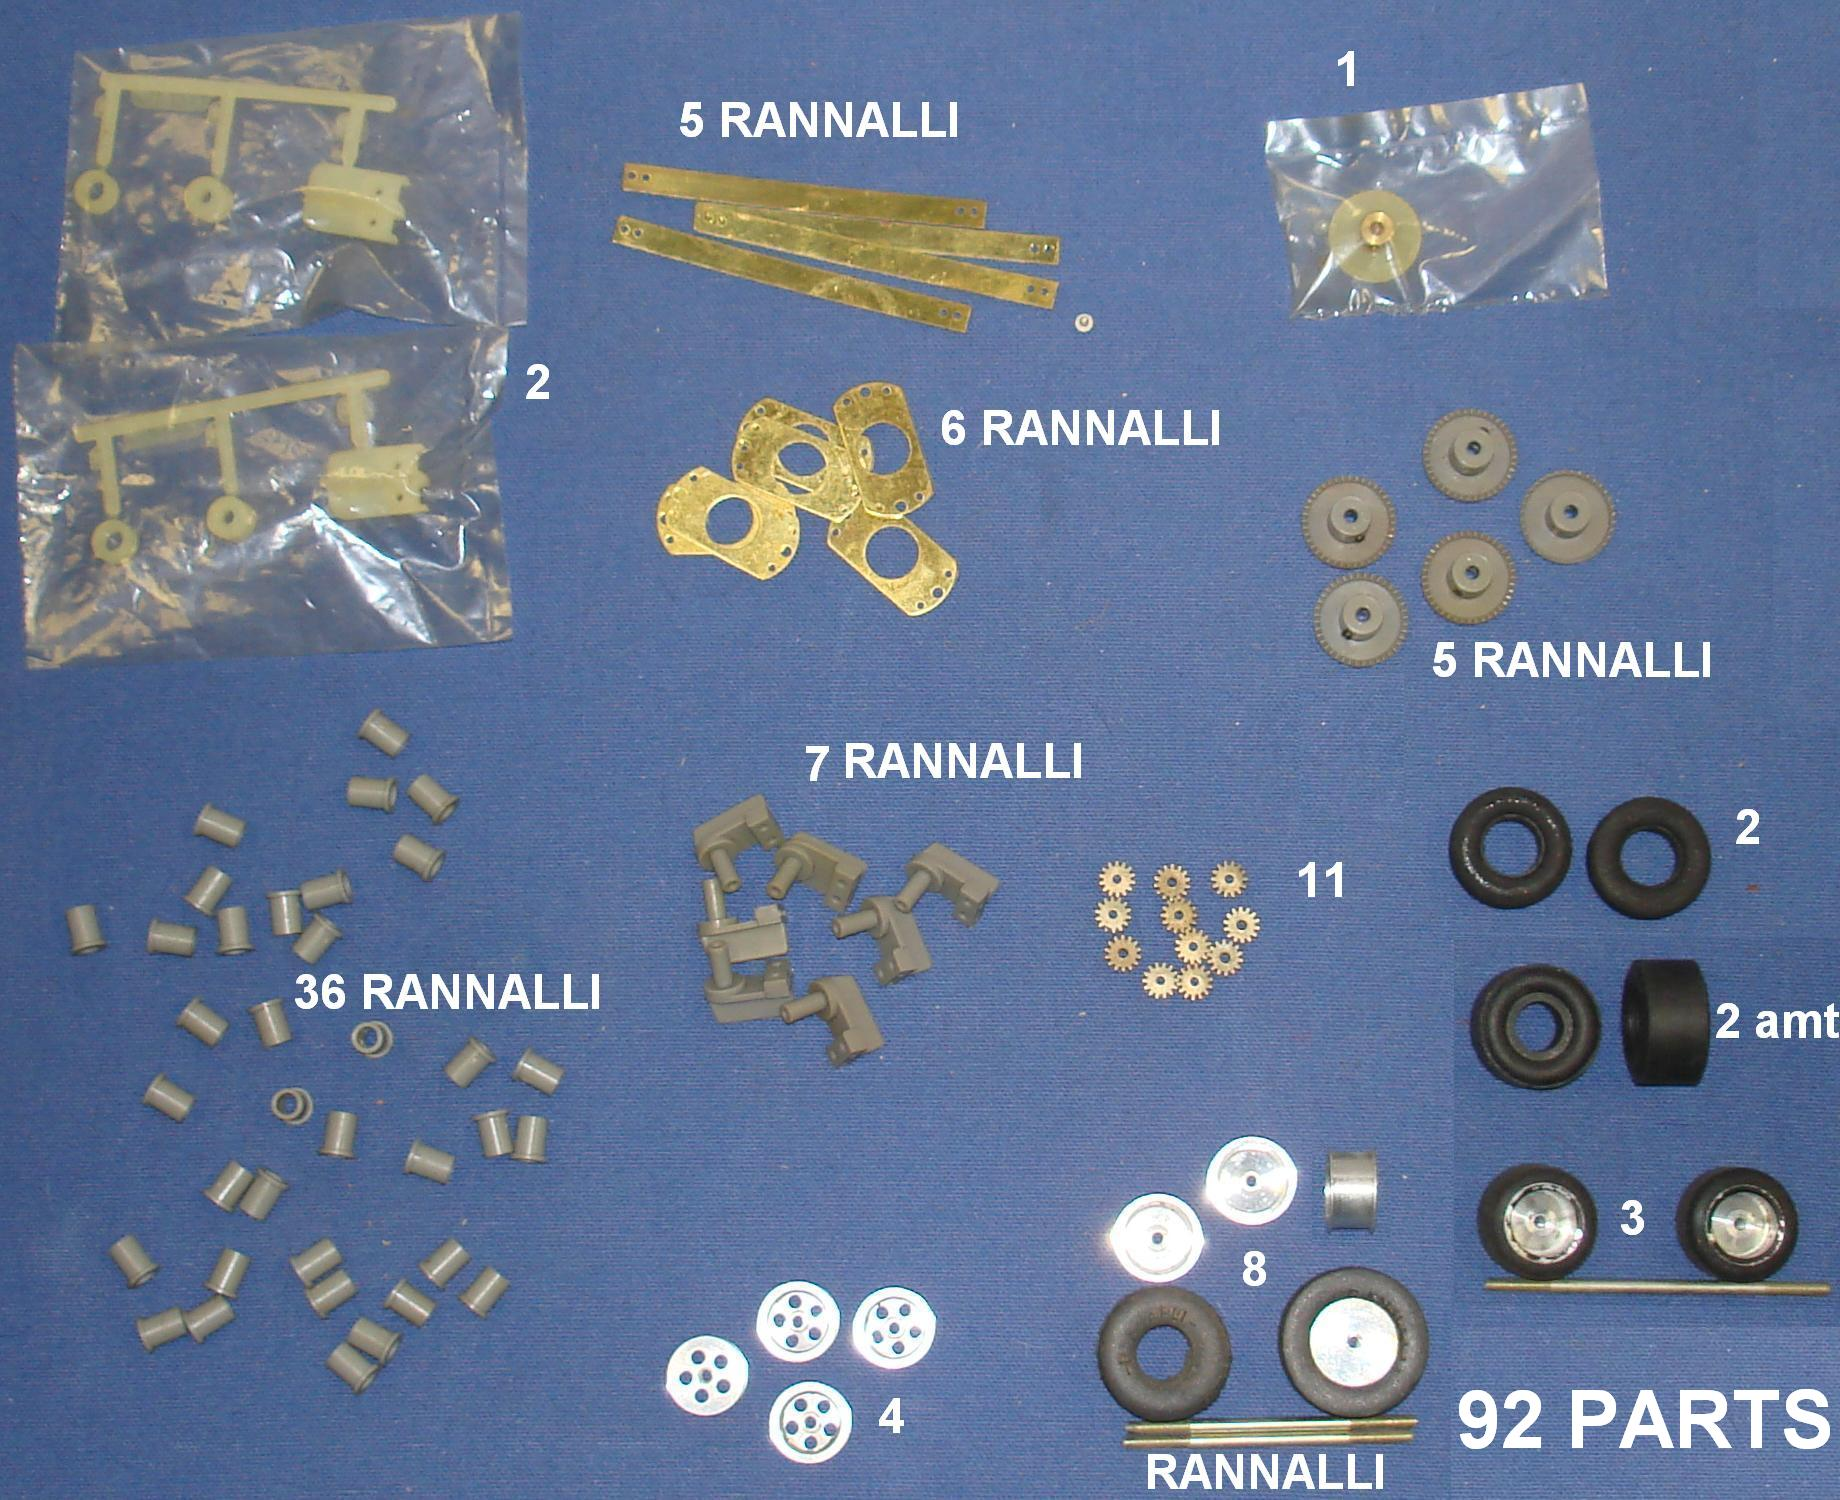 Rannalli Custom 1/24 Scale Slot Car Racing Parts Gears Axles Tires Chrome Wheels Guides